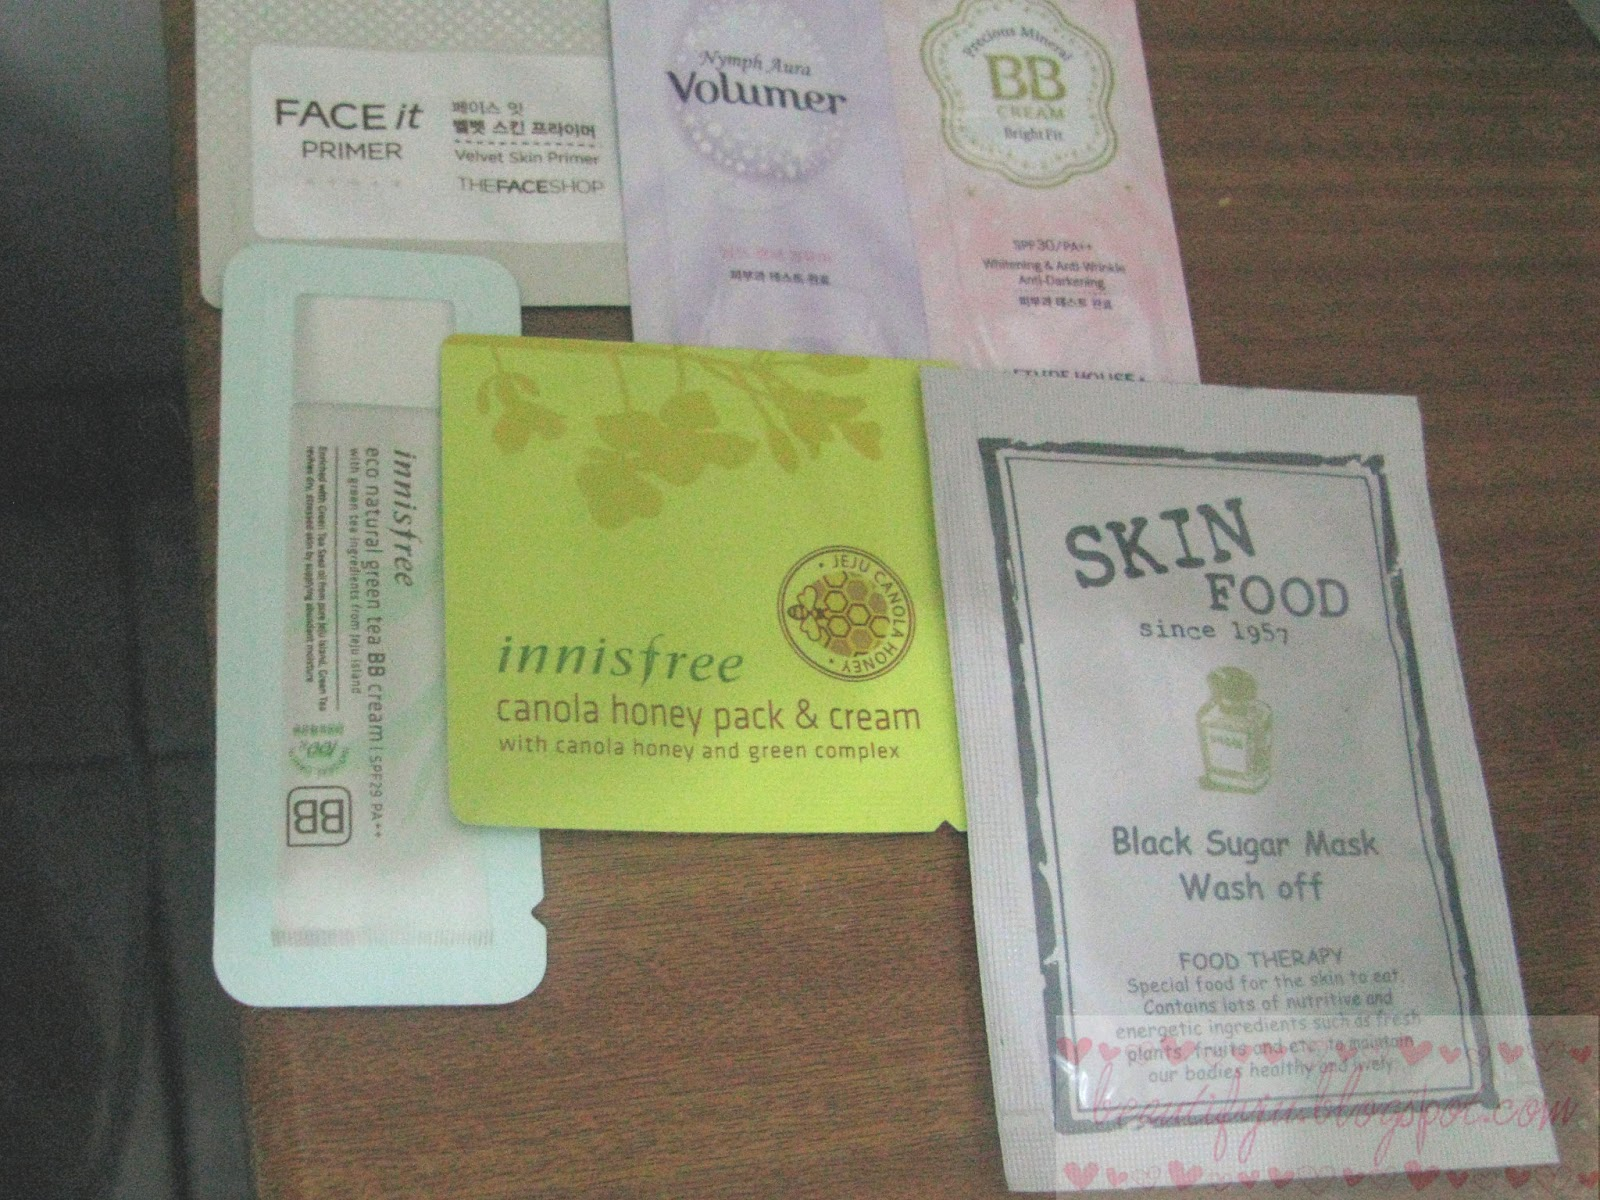 The Face Shop Face It Primer Sample 11 Etude House Nymph Aura Volumer Sample and BB Cream Bright Fit Sample